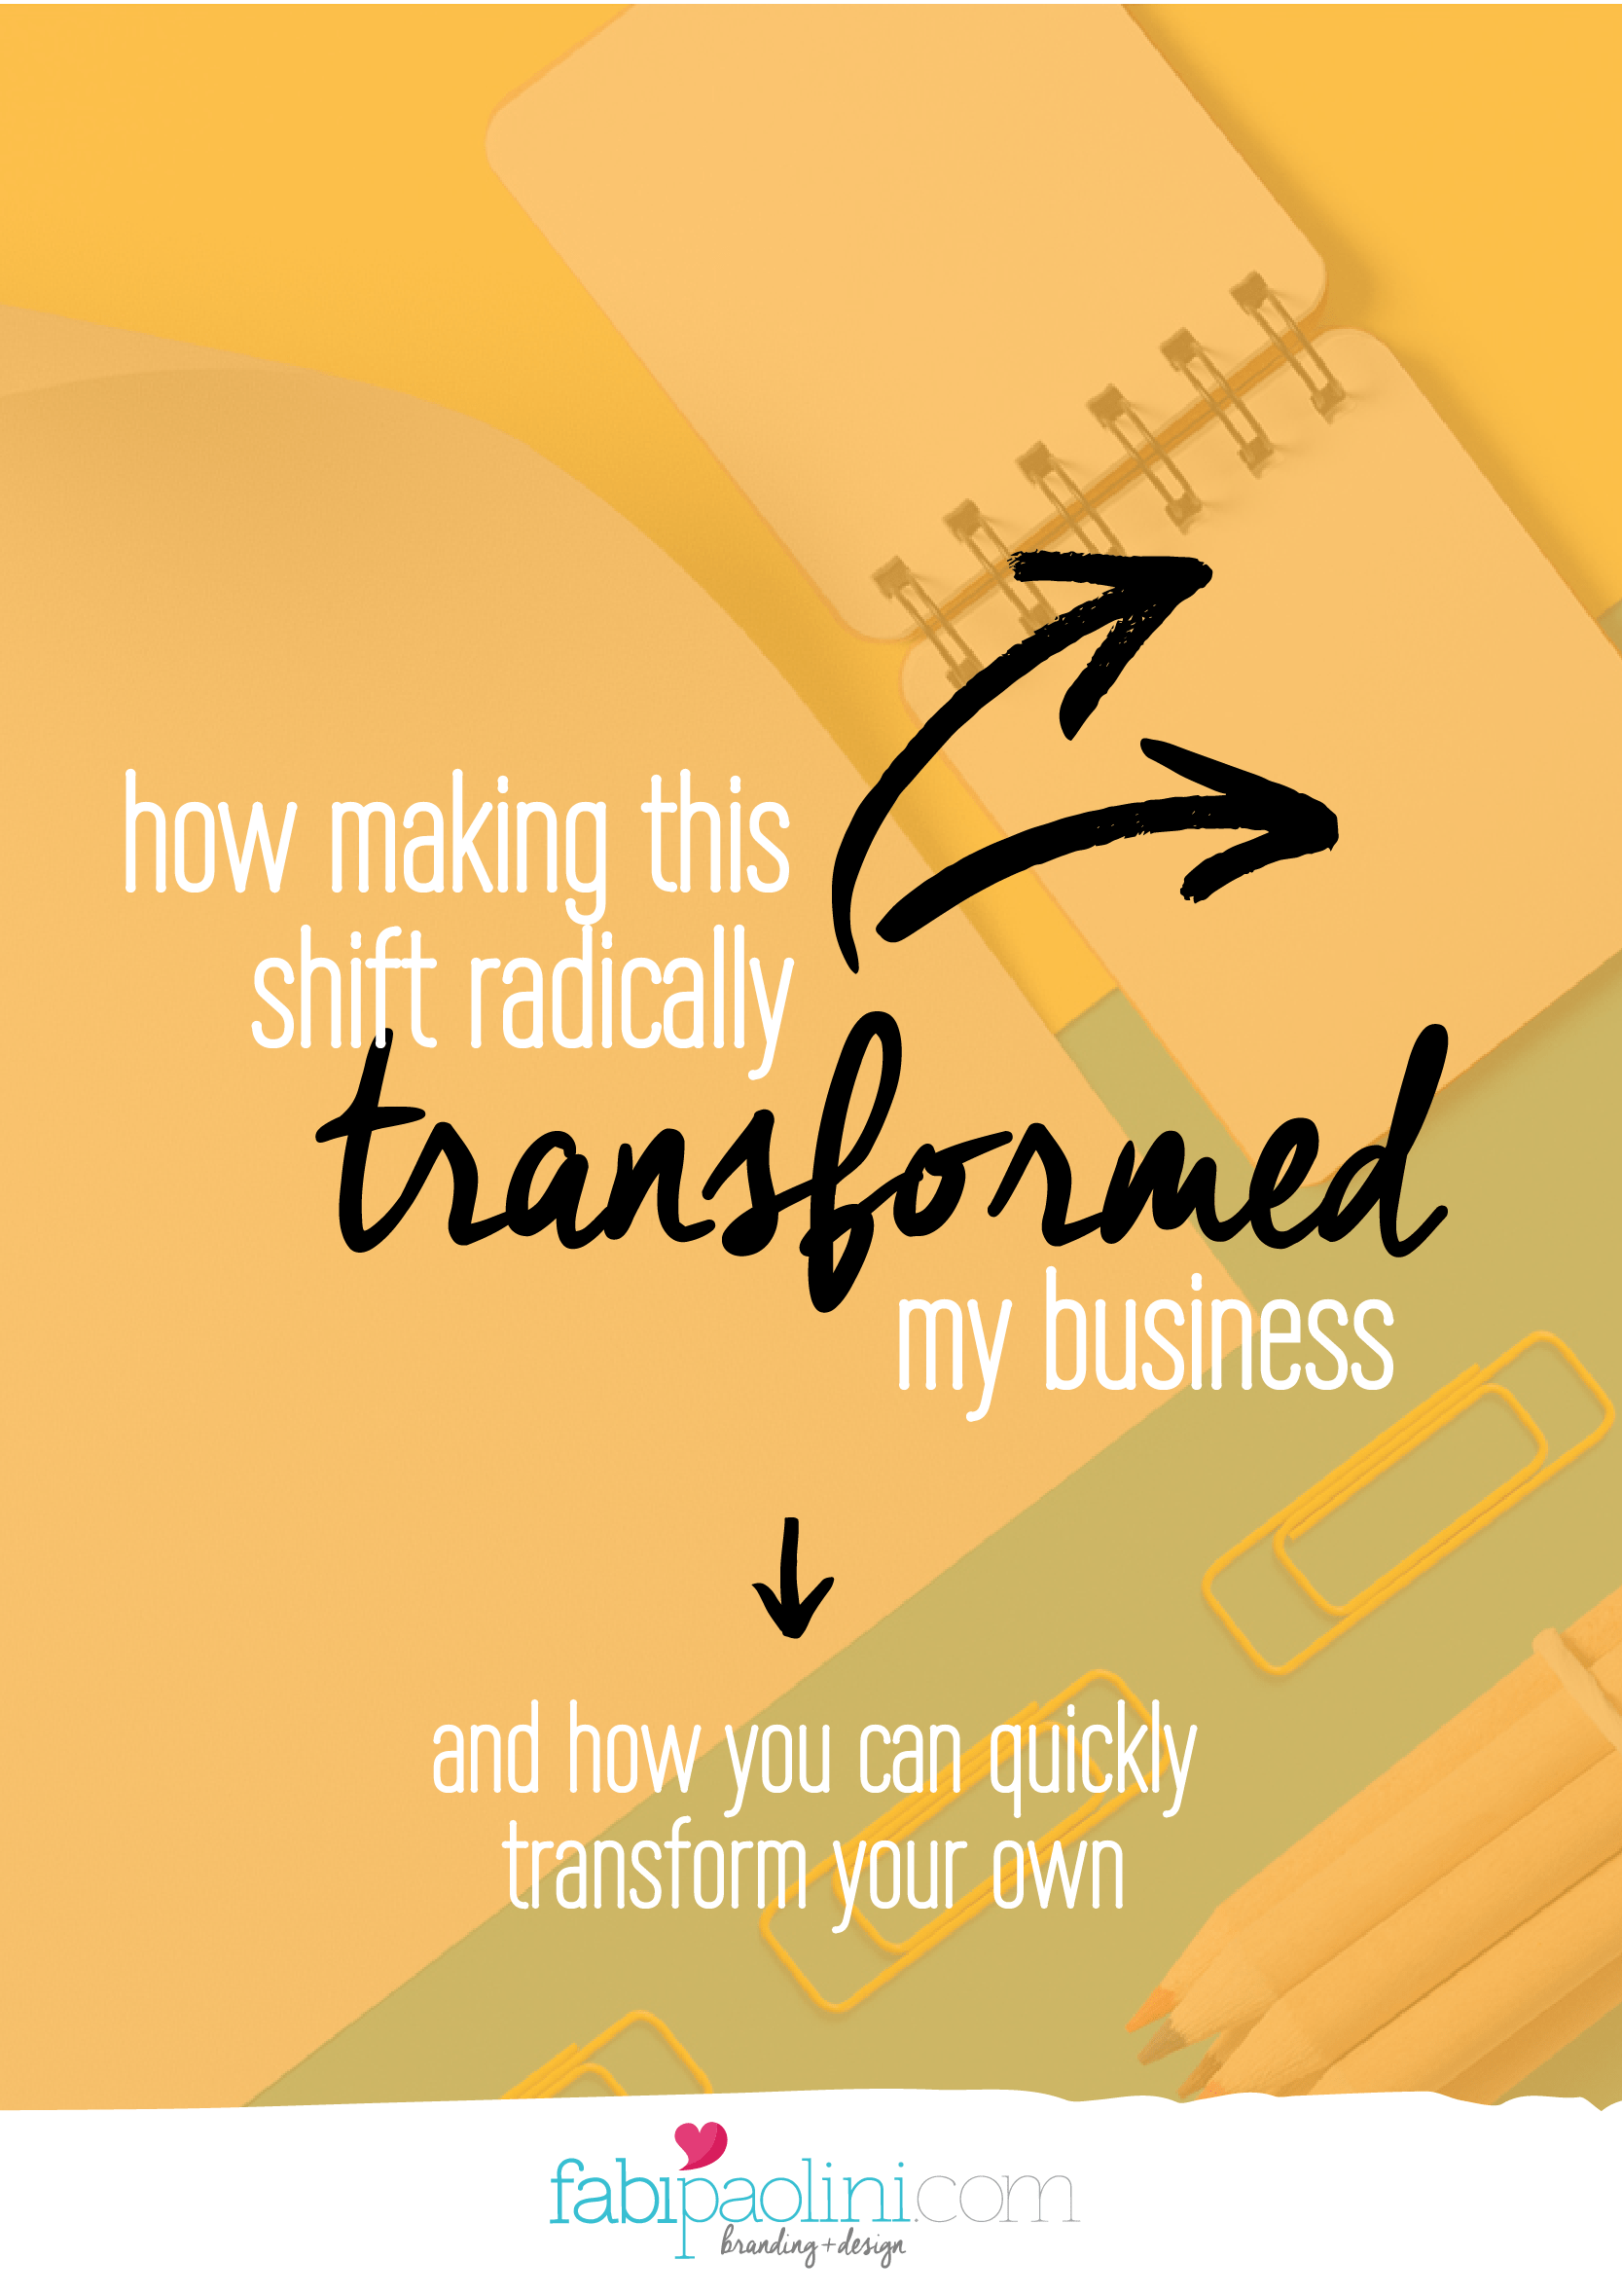 How making this shift radically transformed my business and how it can transform yours.